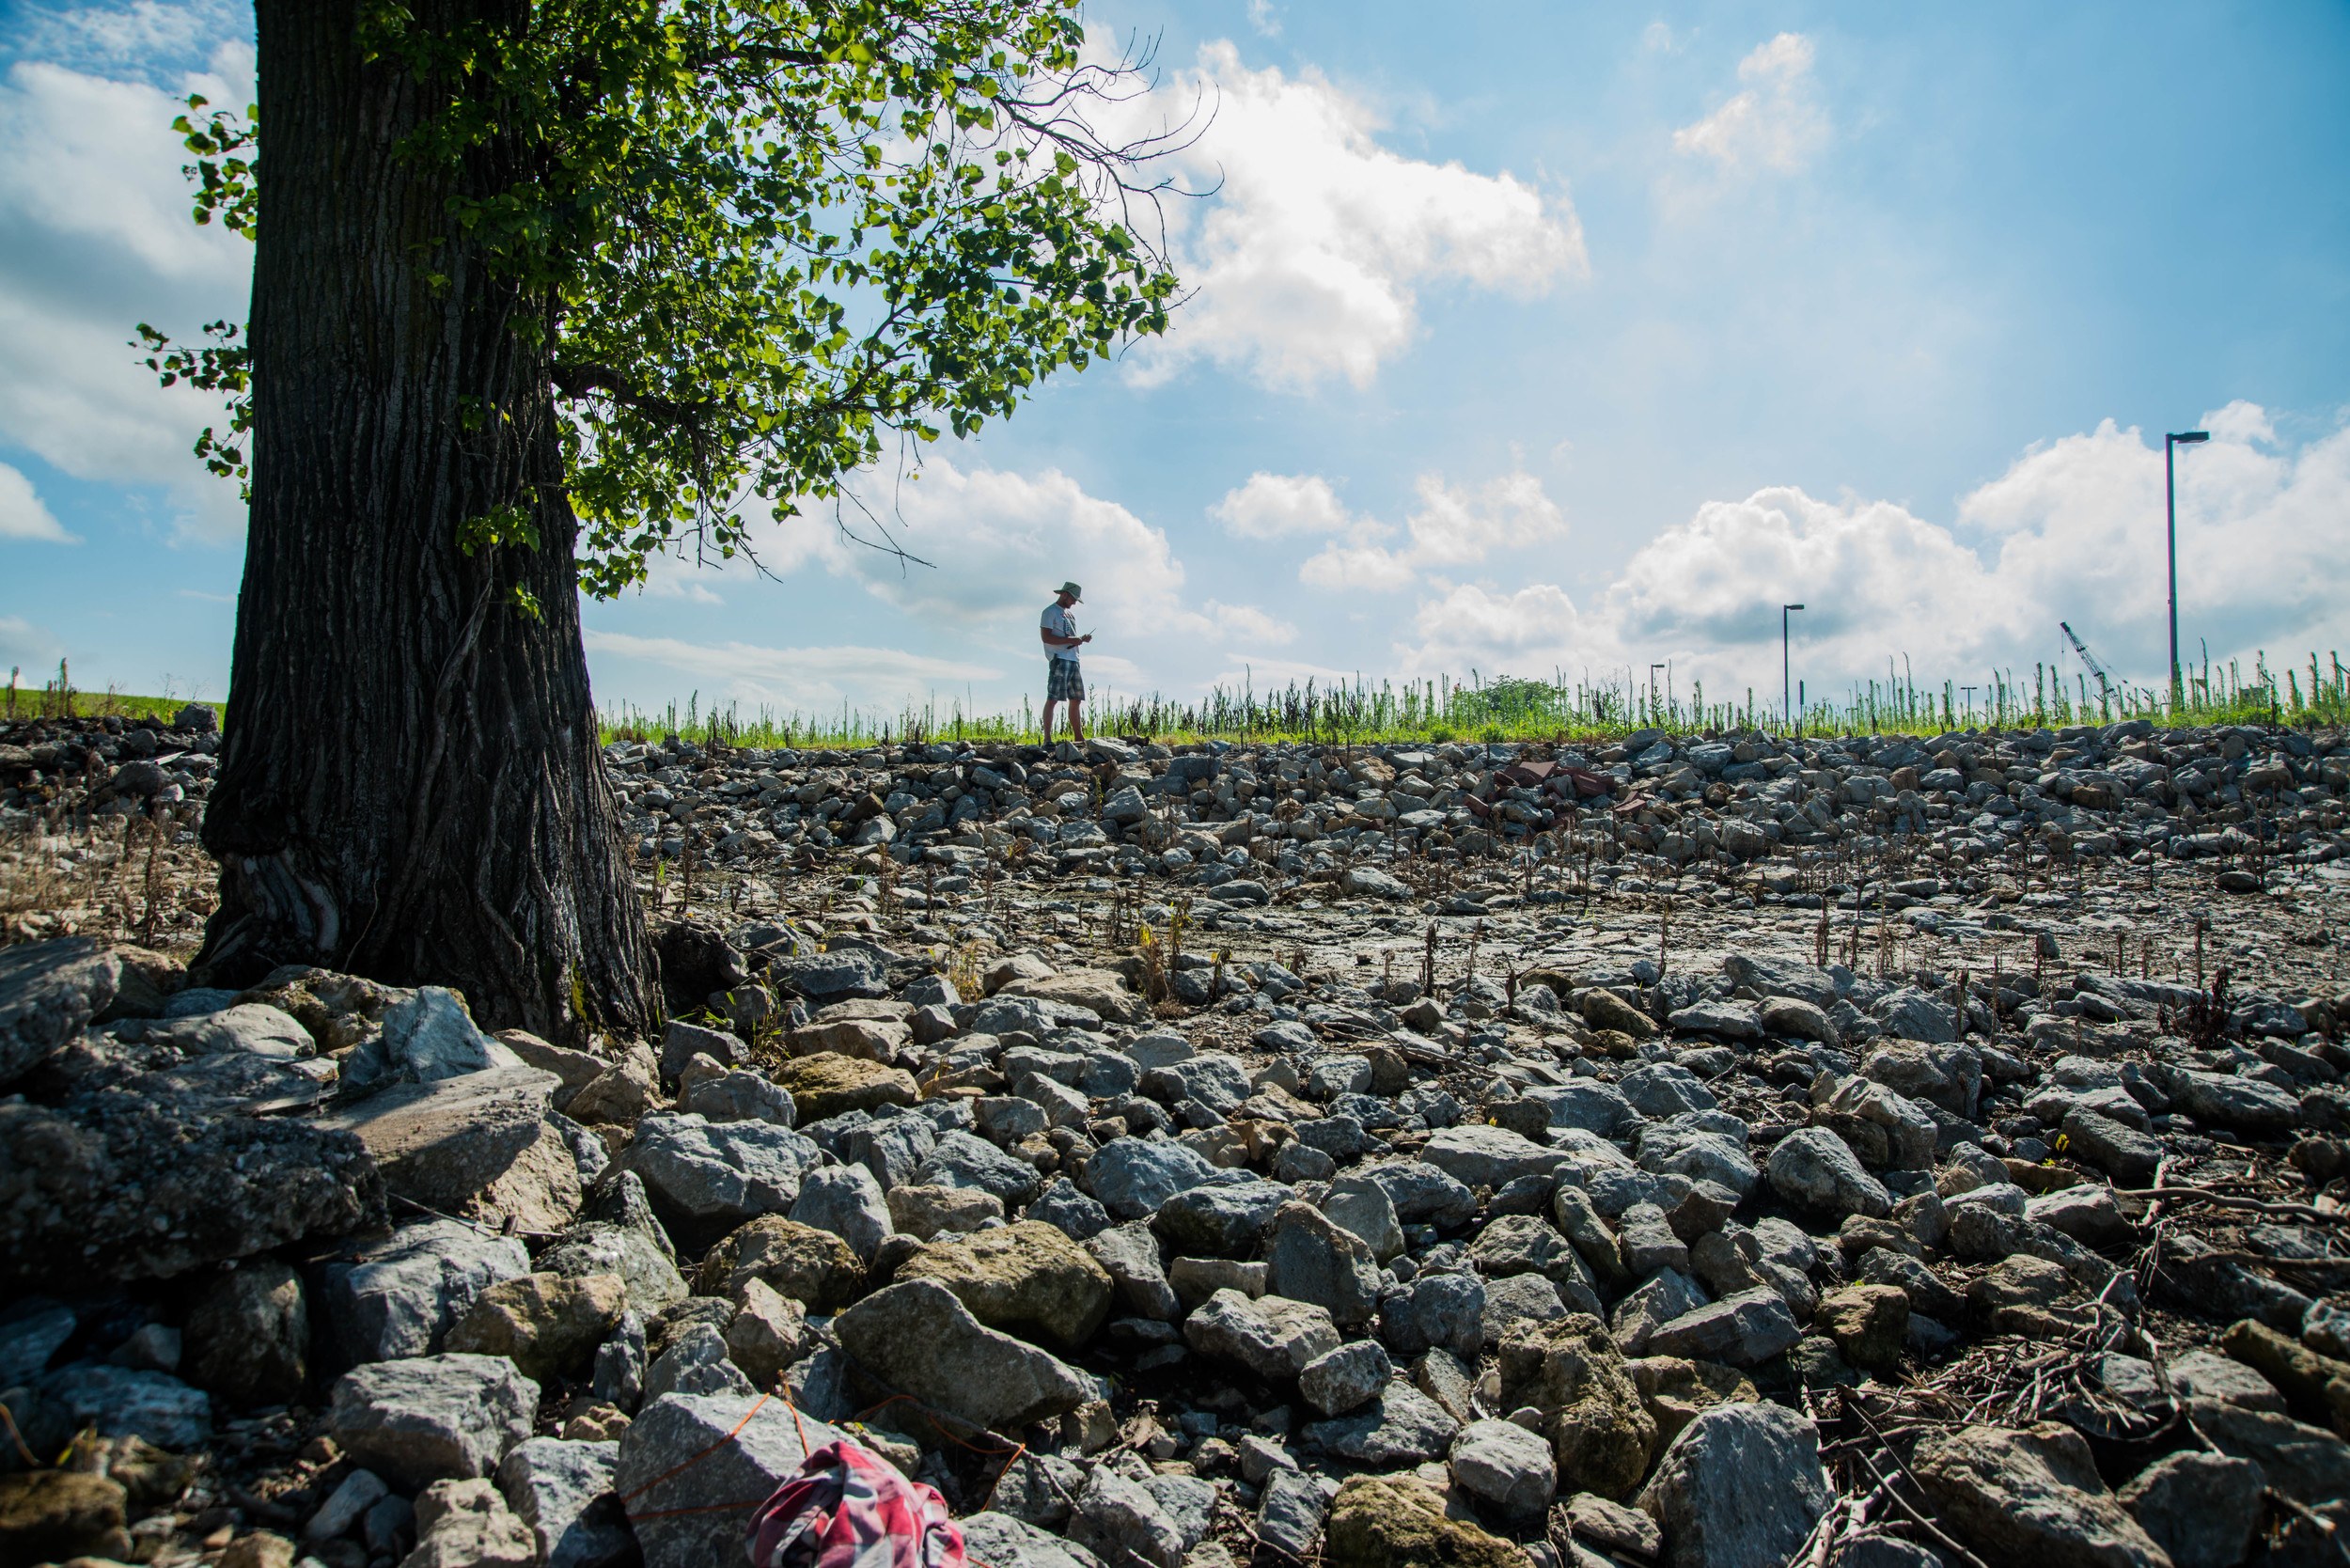 Areas before and after lock and dams, and at other various parts of the river, were covered with sections of broken up rocks and gravel called rip-rap. We would come to know rip-rap quite well and spend much time precariously balancing upon its loose, unstable existence.